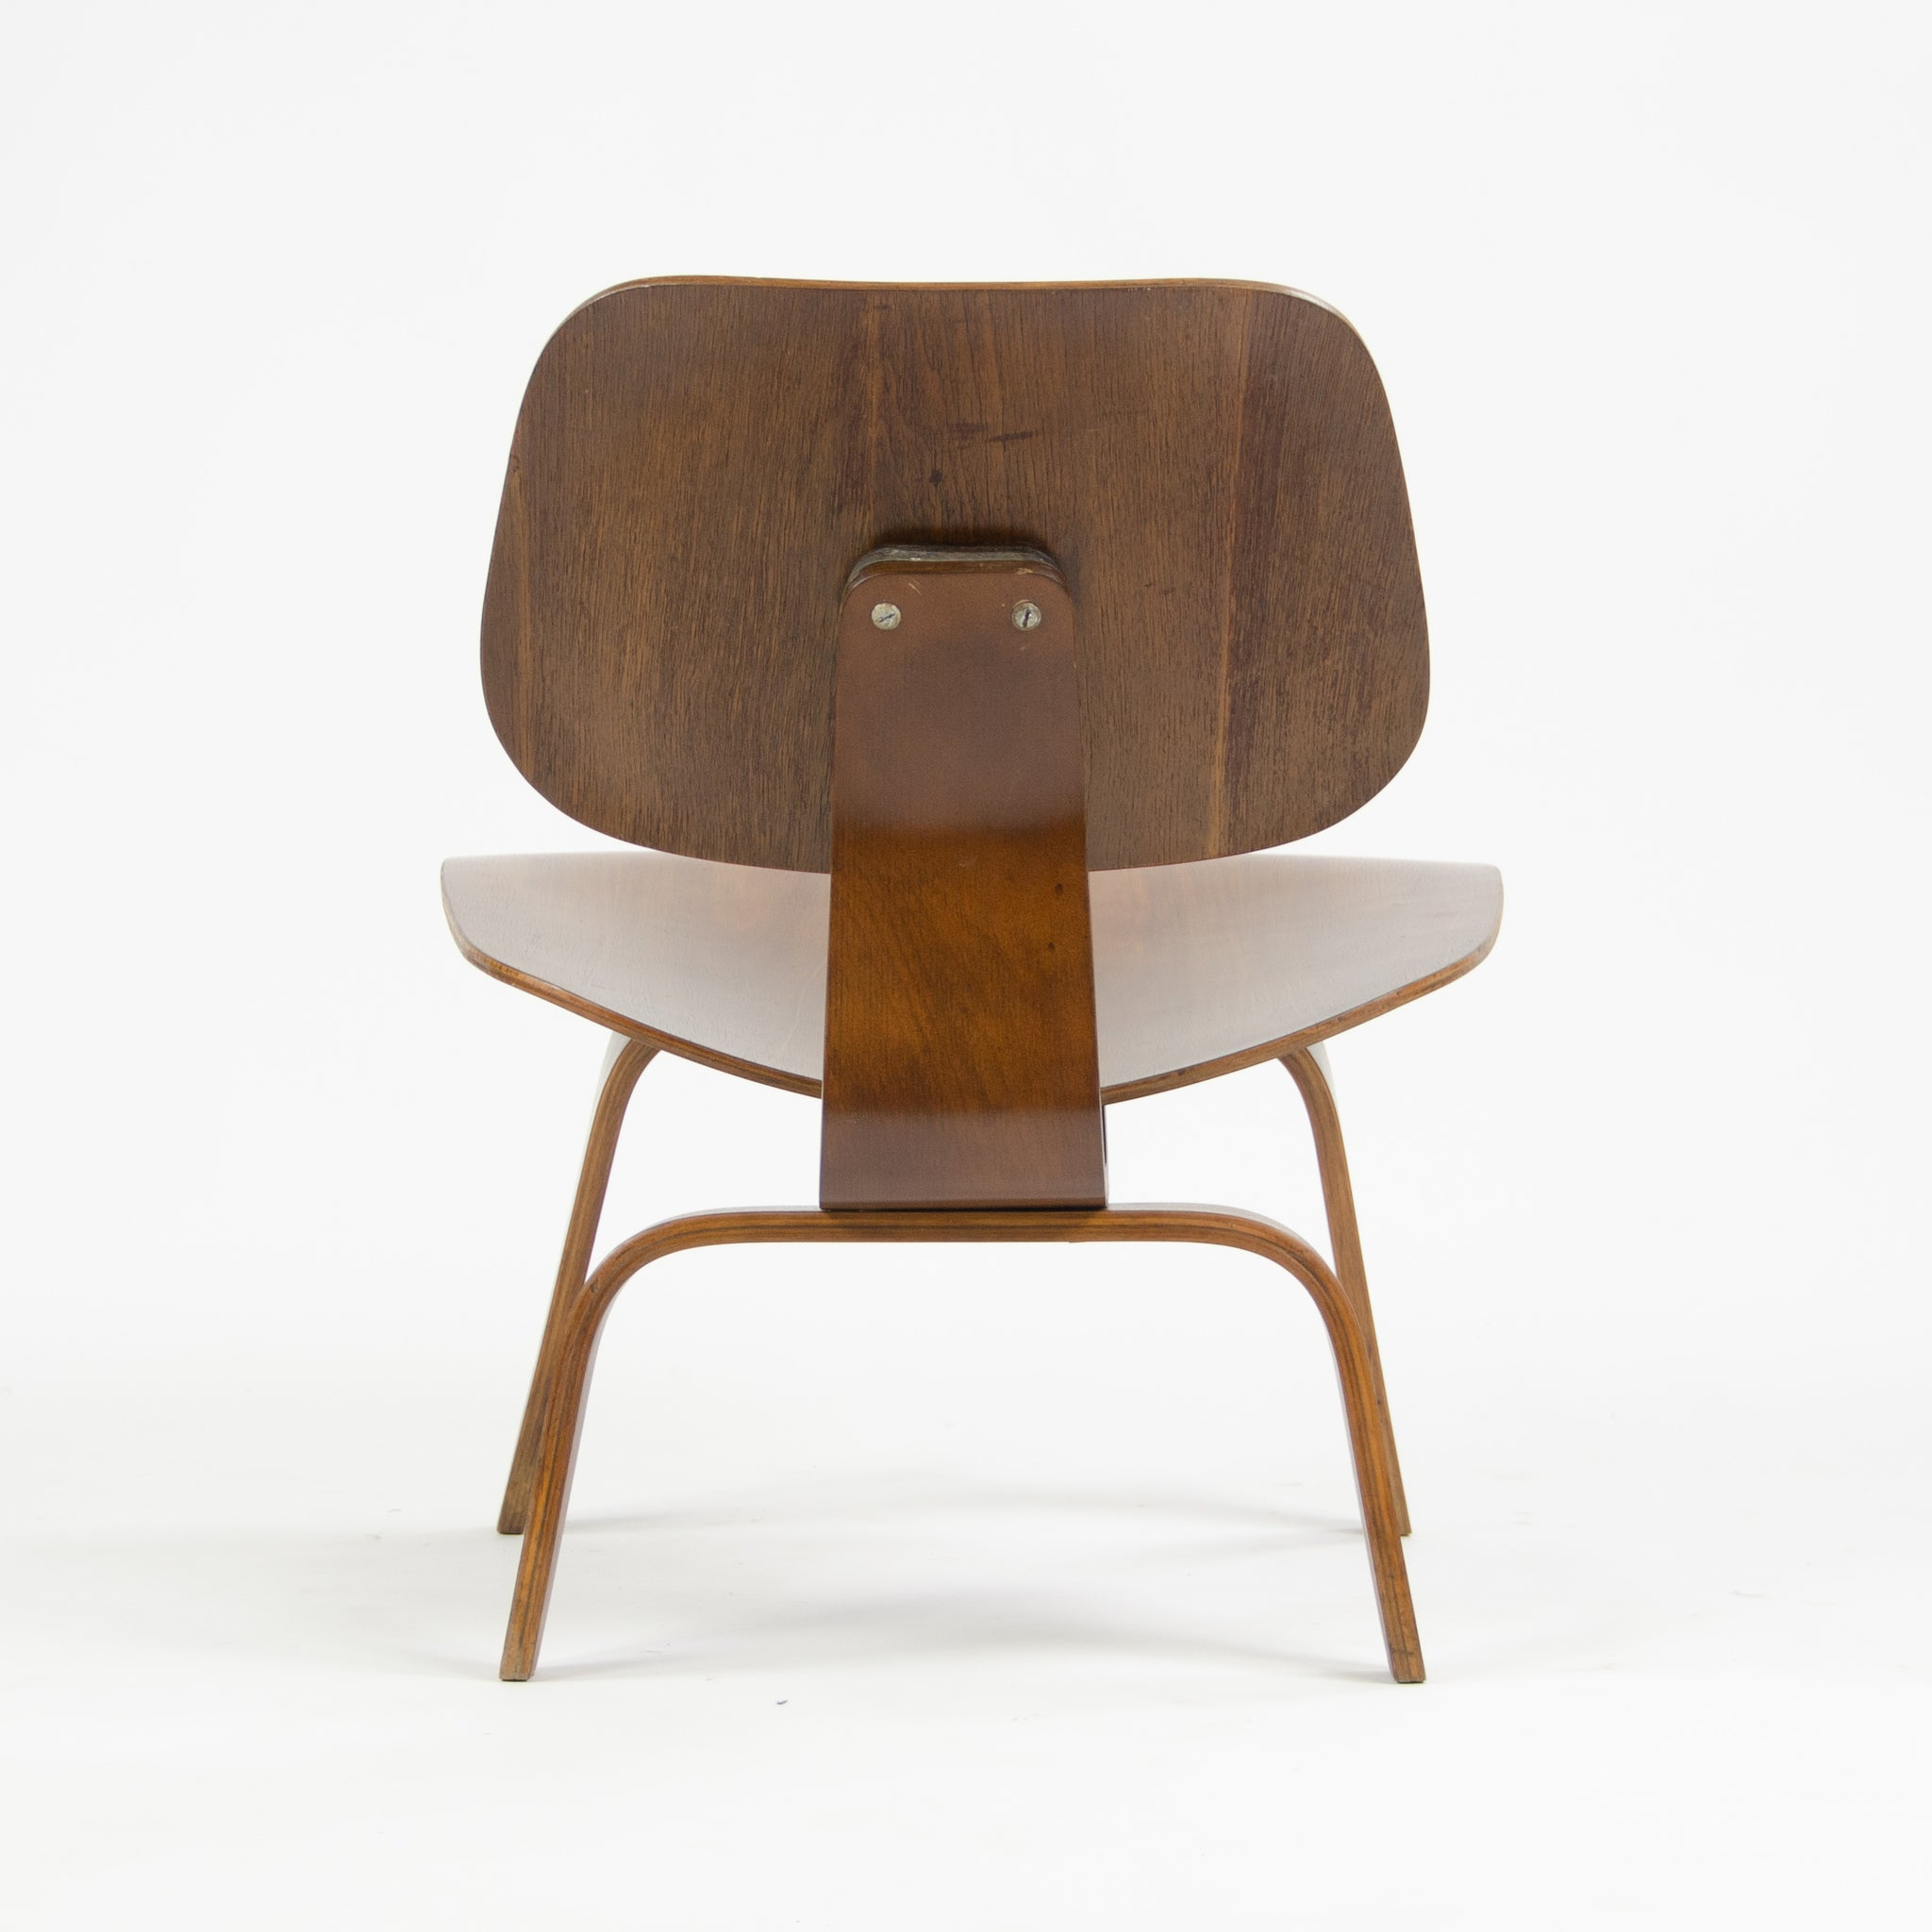 SOLD 1947 Eames Evans Herman Miller LCW Lounge Chair Wood Walnut